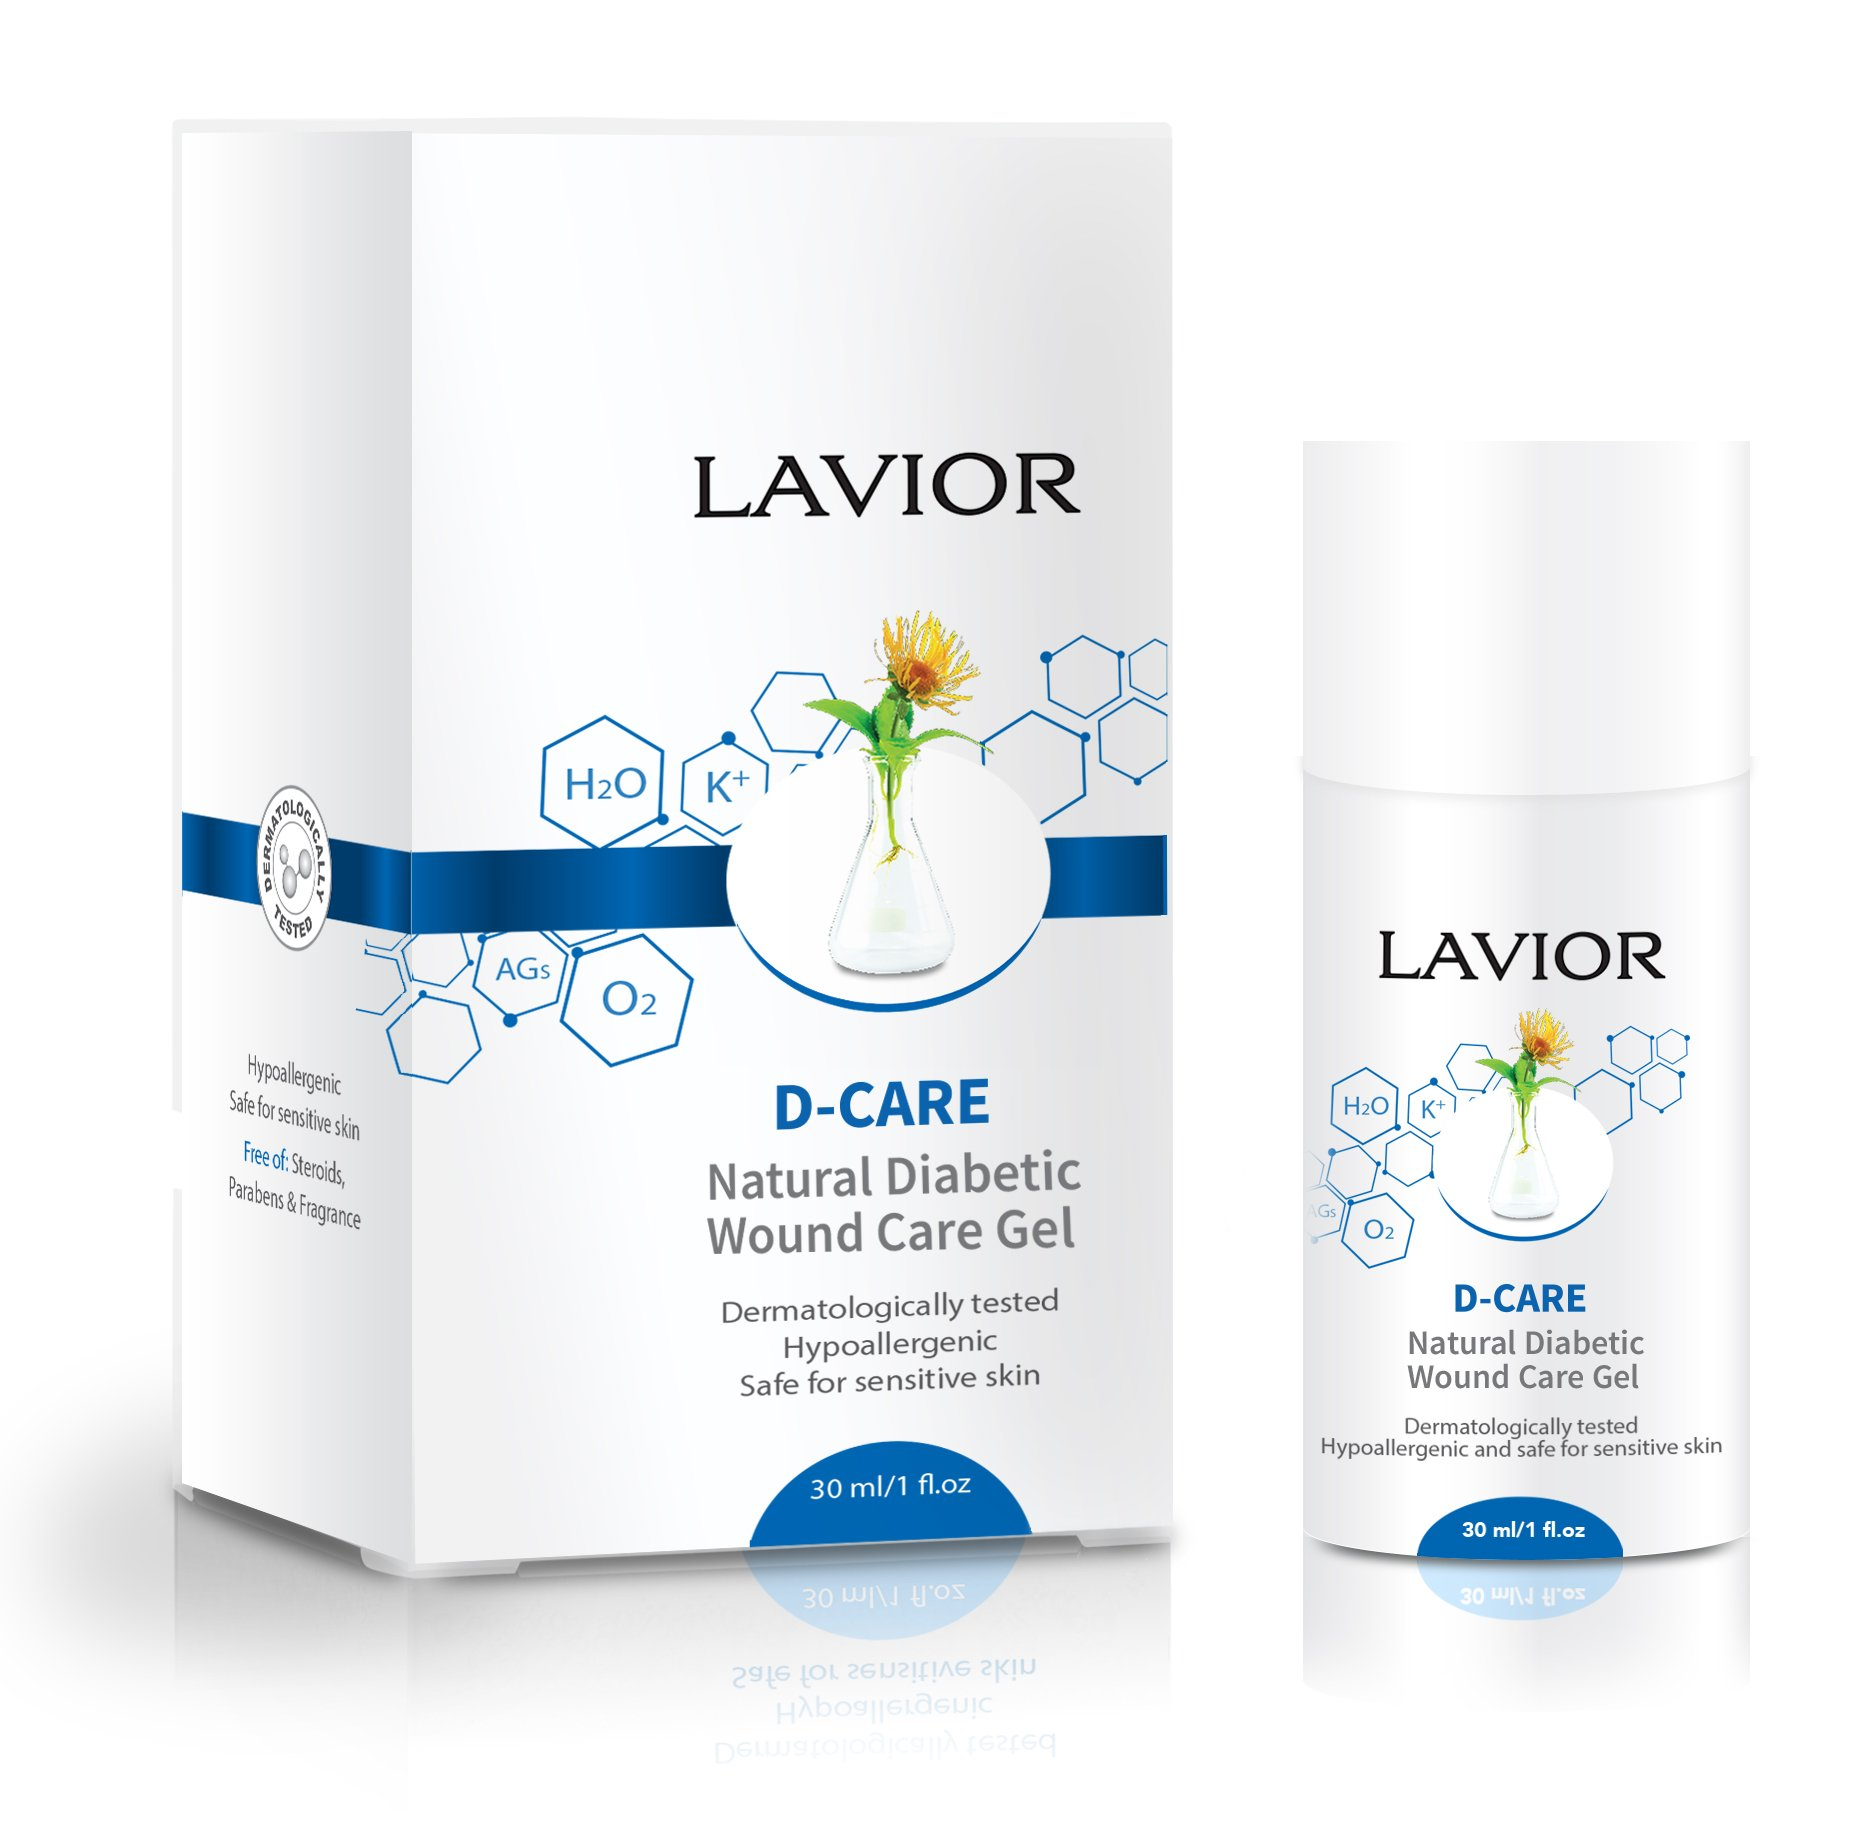 LAVIOR D-Care Natural Diabetic Wound Care Gel - Anti-Inflammatory & Antibacterial - Clinically Proven, Podiatrist Recommended, Steroid Free